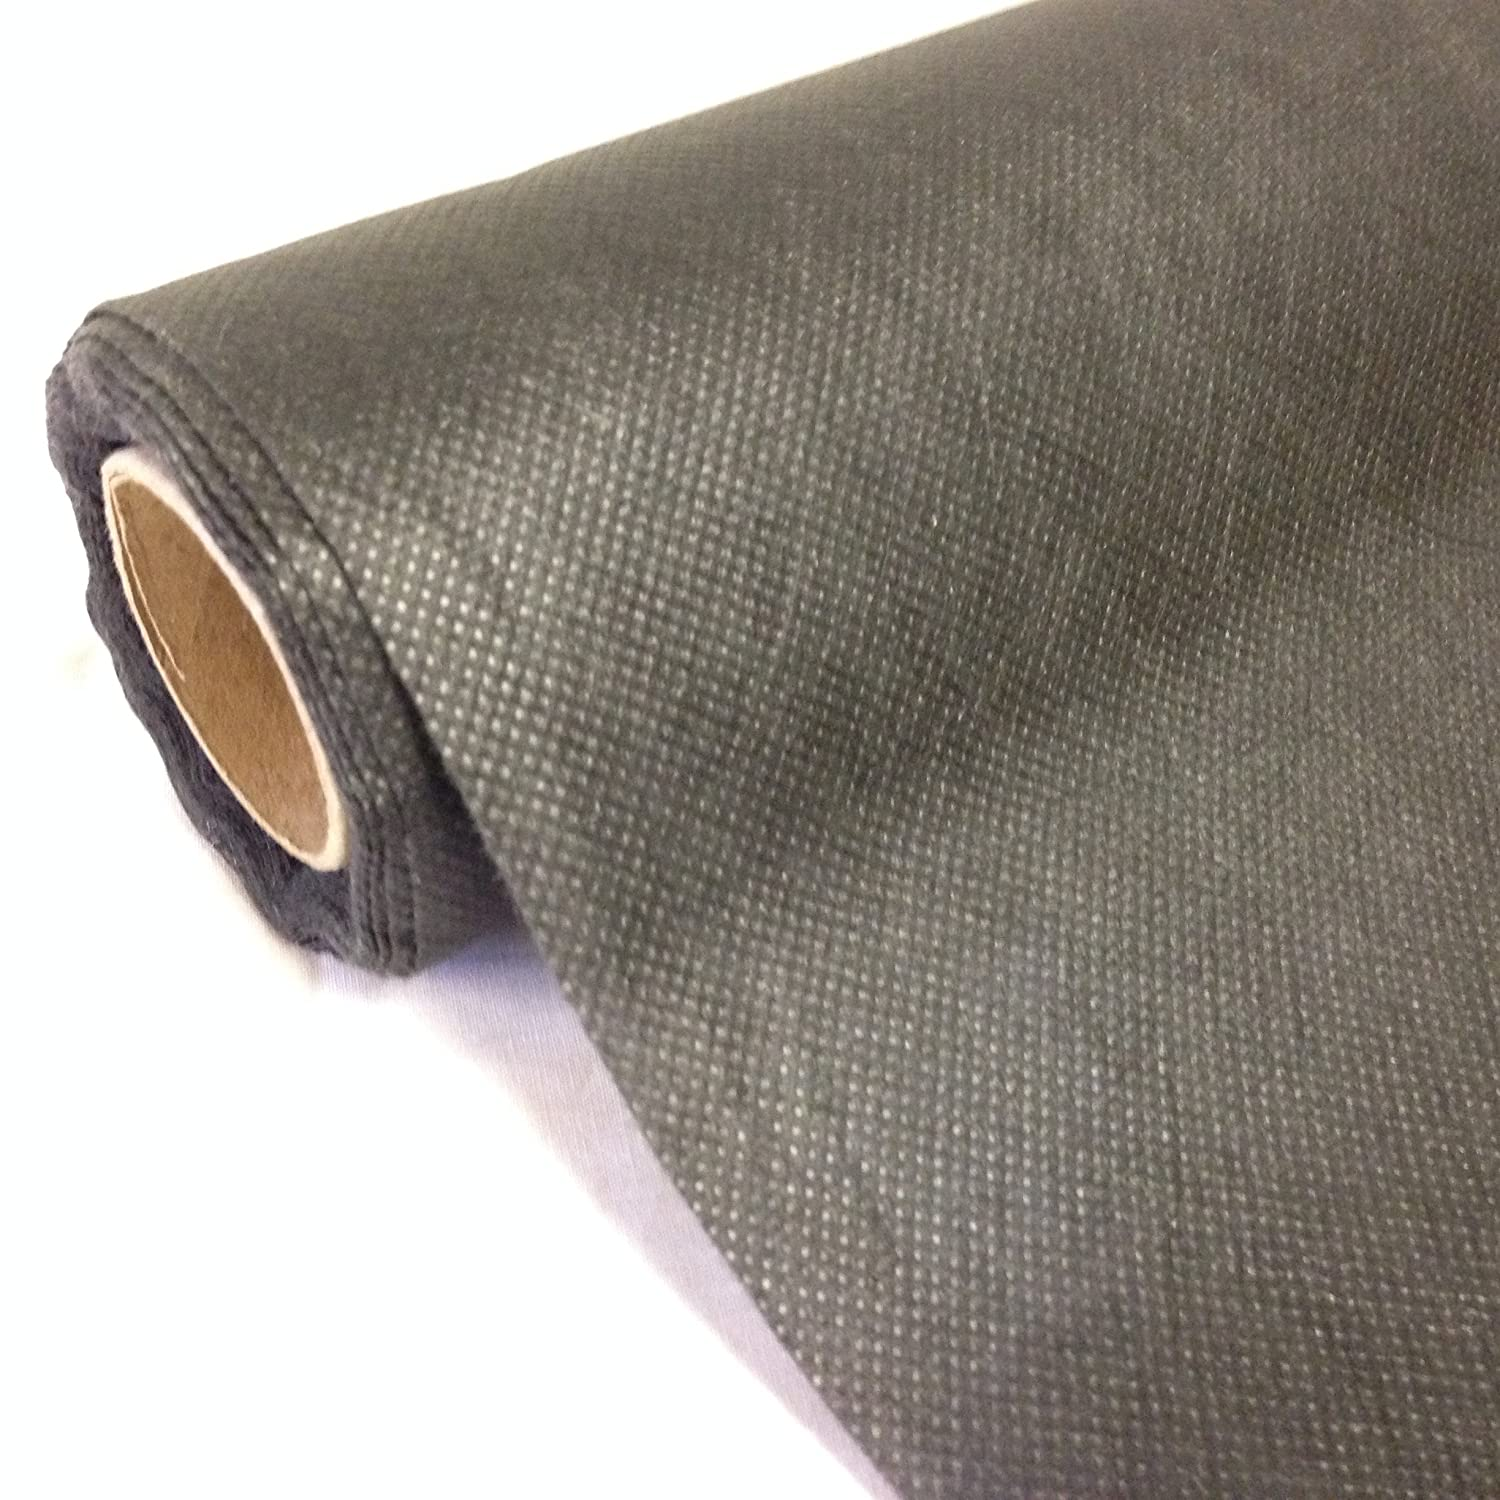 Weed Control Fabric 2m x 10m weed barrier matting Fiberweb Geosynthetics 070275